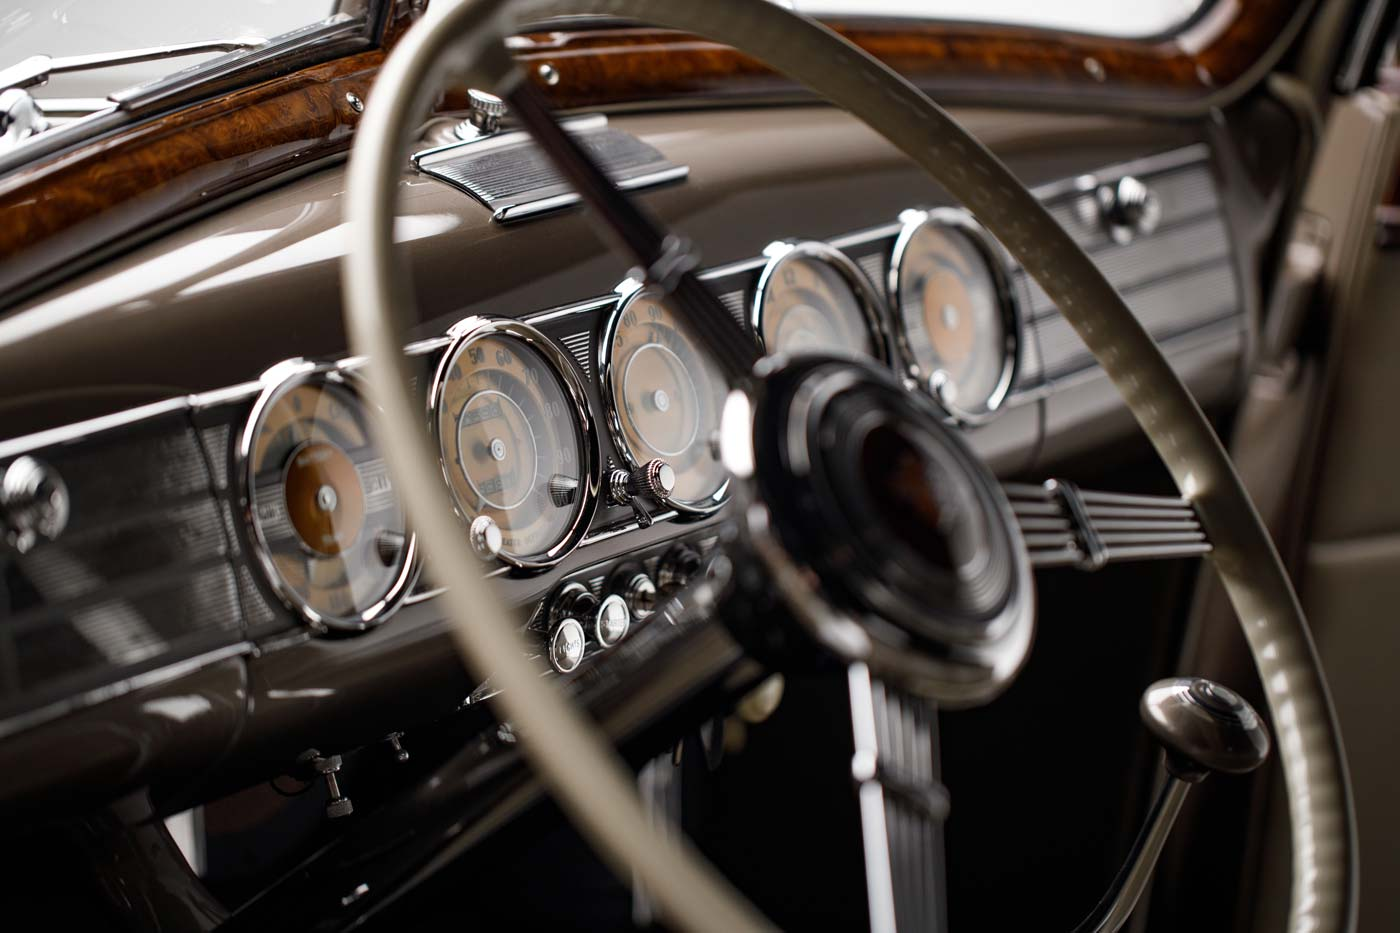 1938 Packard Twelve Convertible Coupe - The JBS Collection